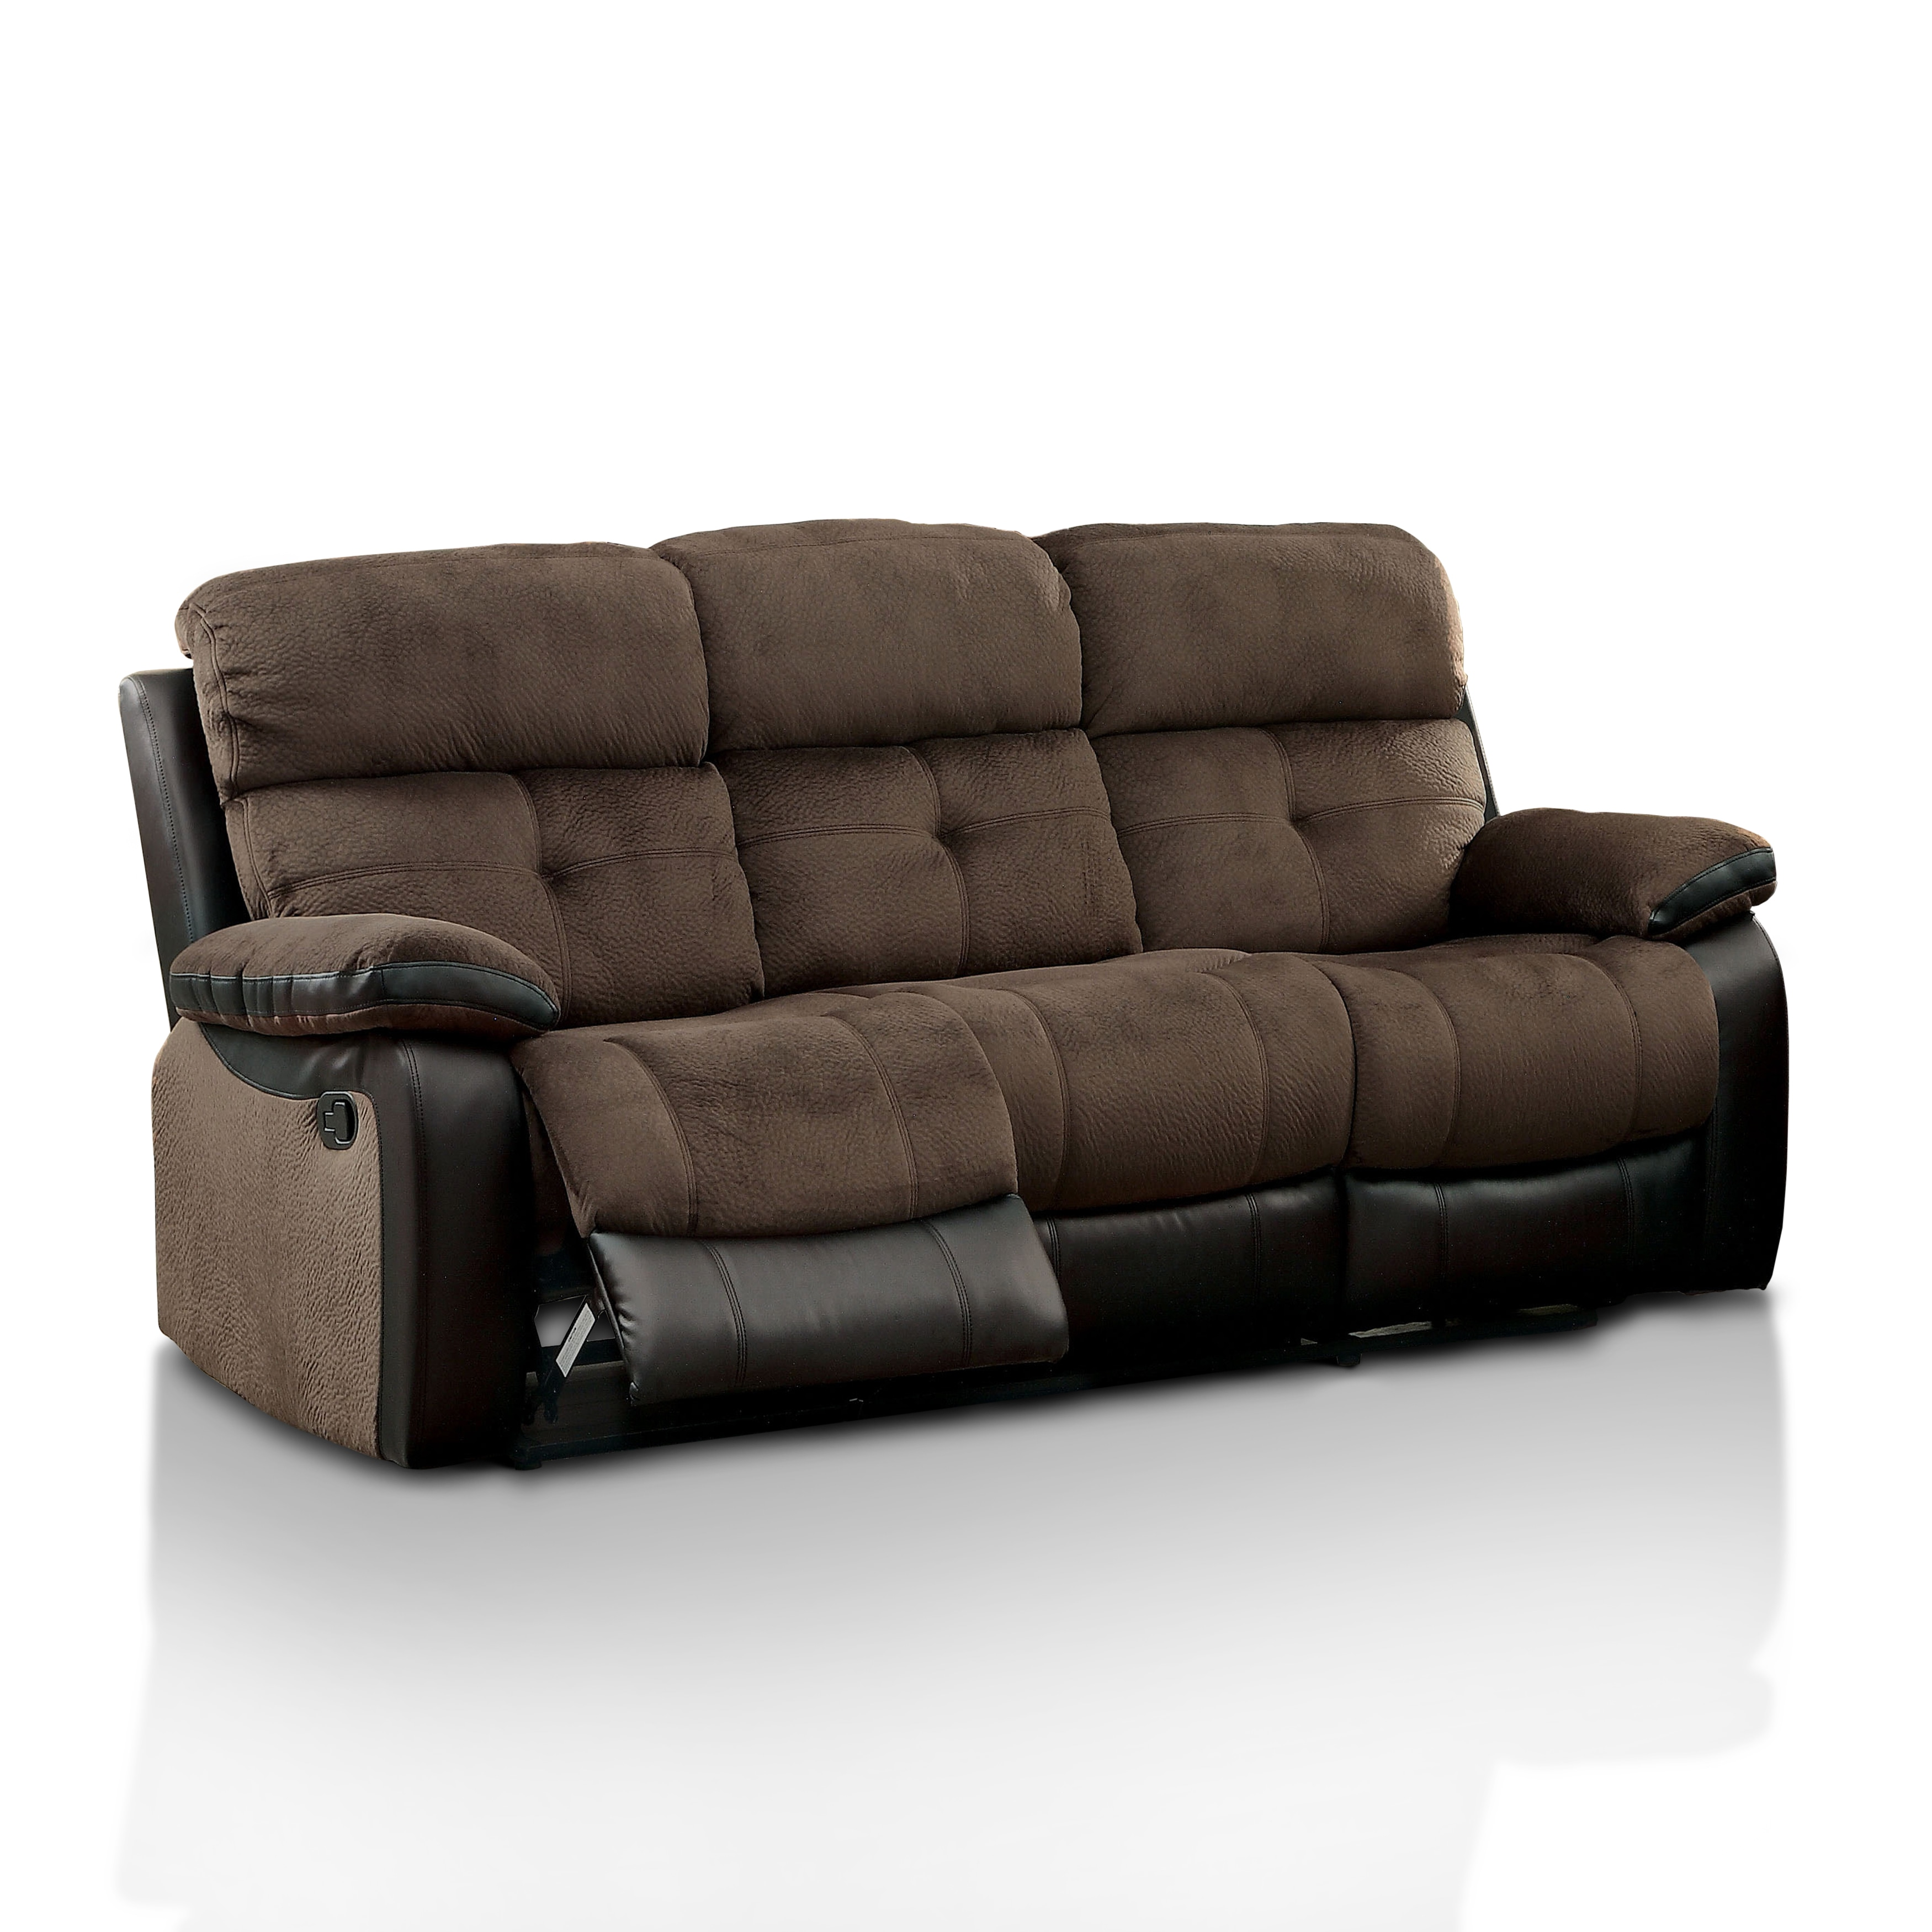 Furniture Of America Fawnie Two Tone Champion Fabric Leather Reclining Sofa With Console Free Shipping Today 12636799